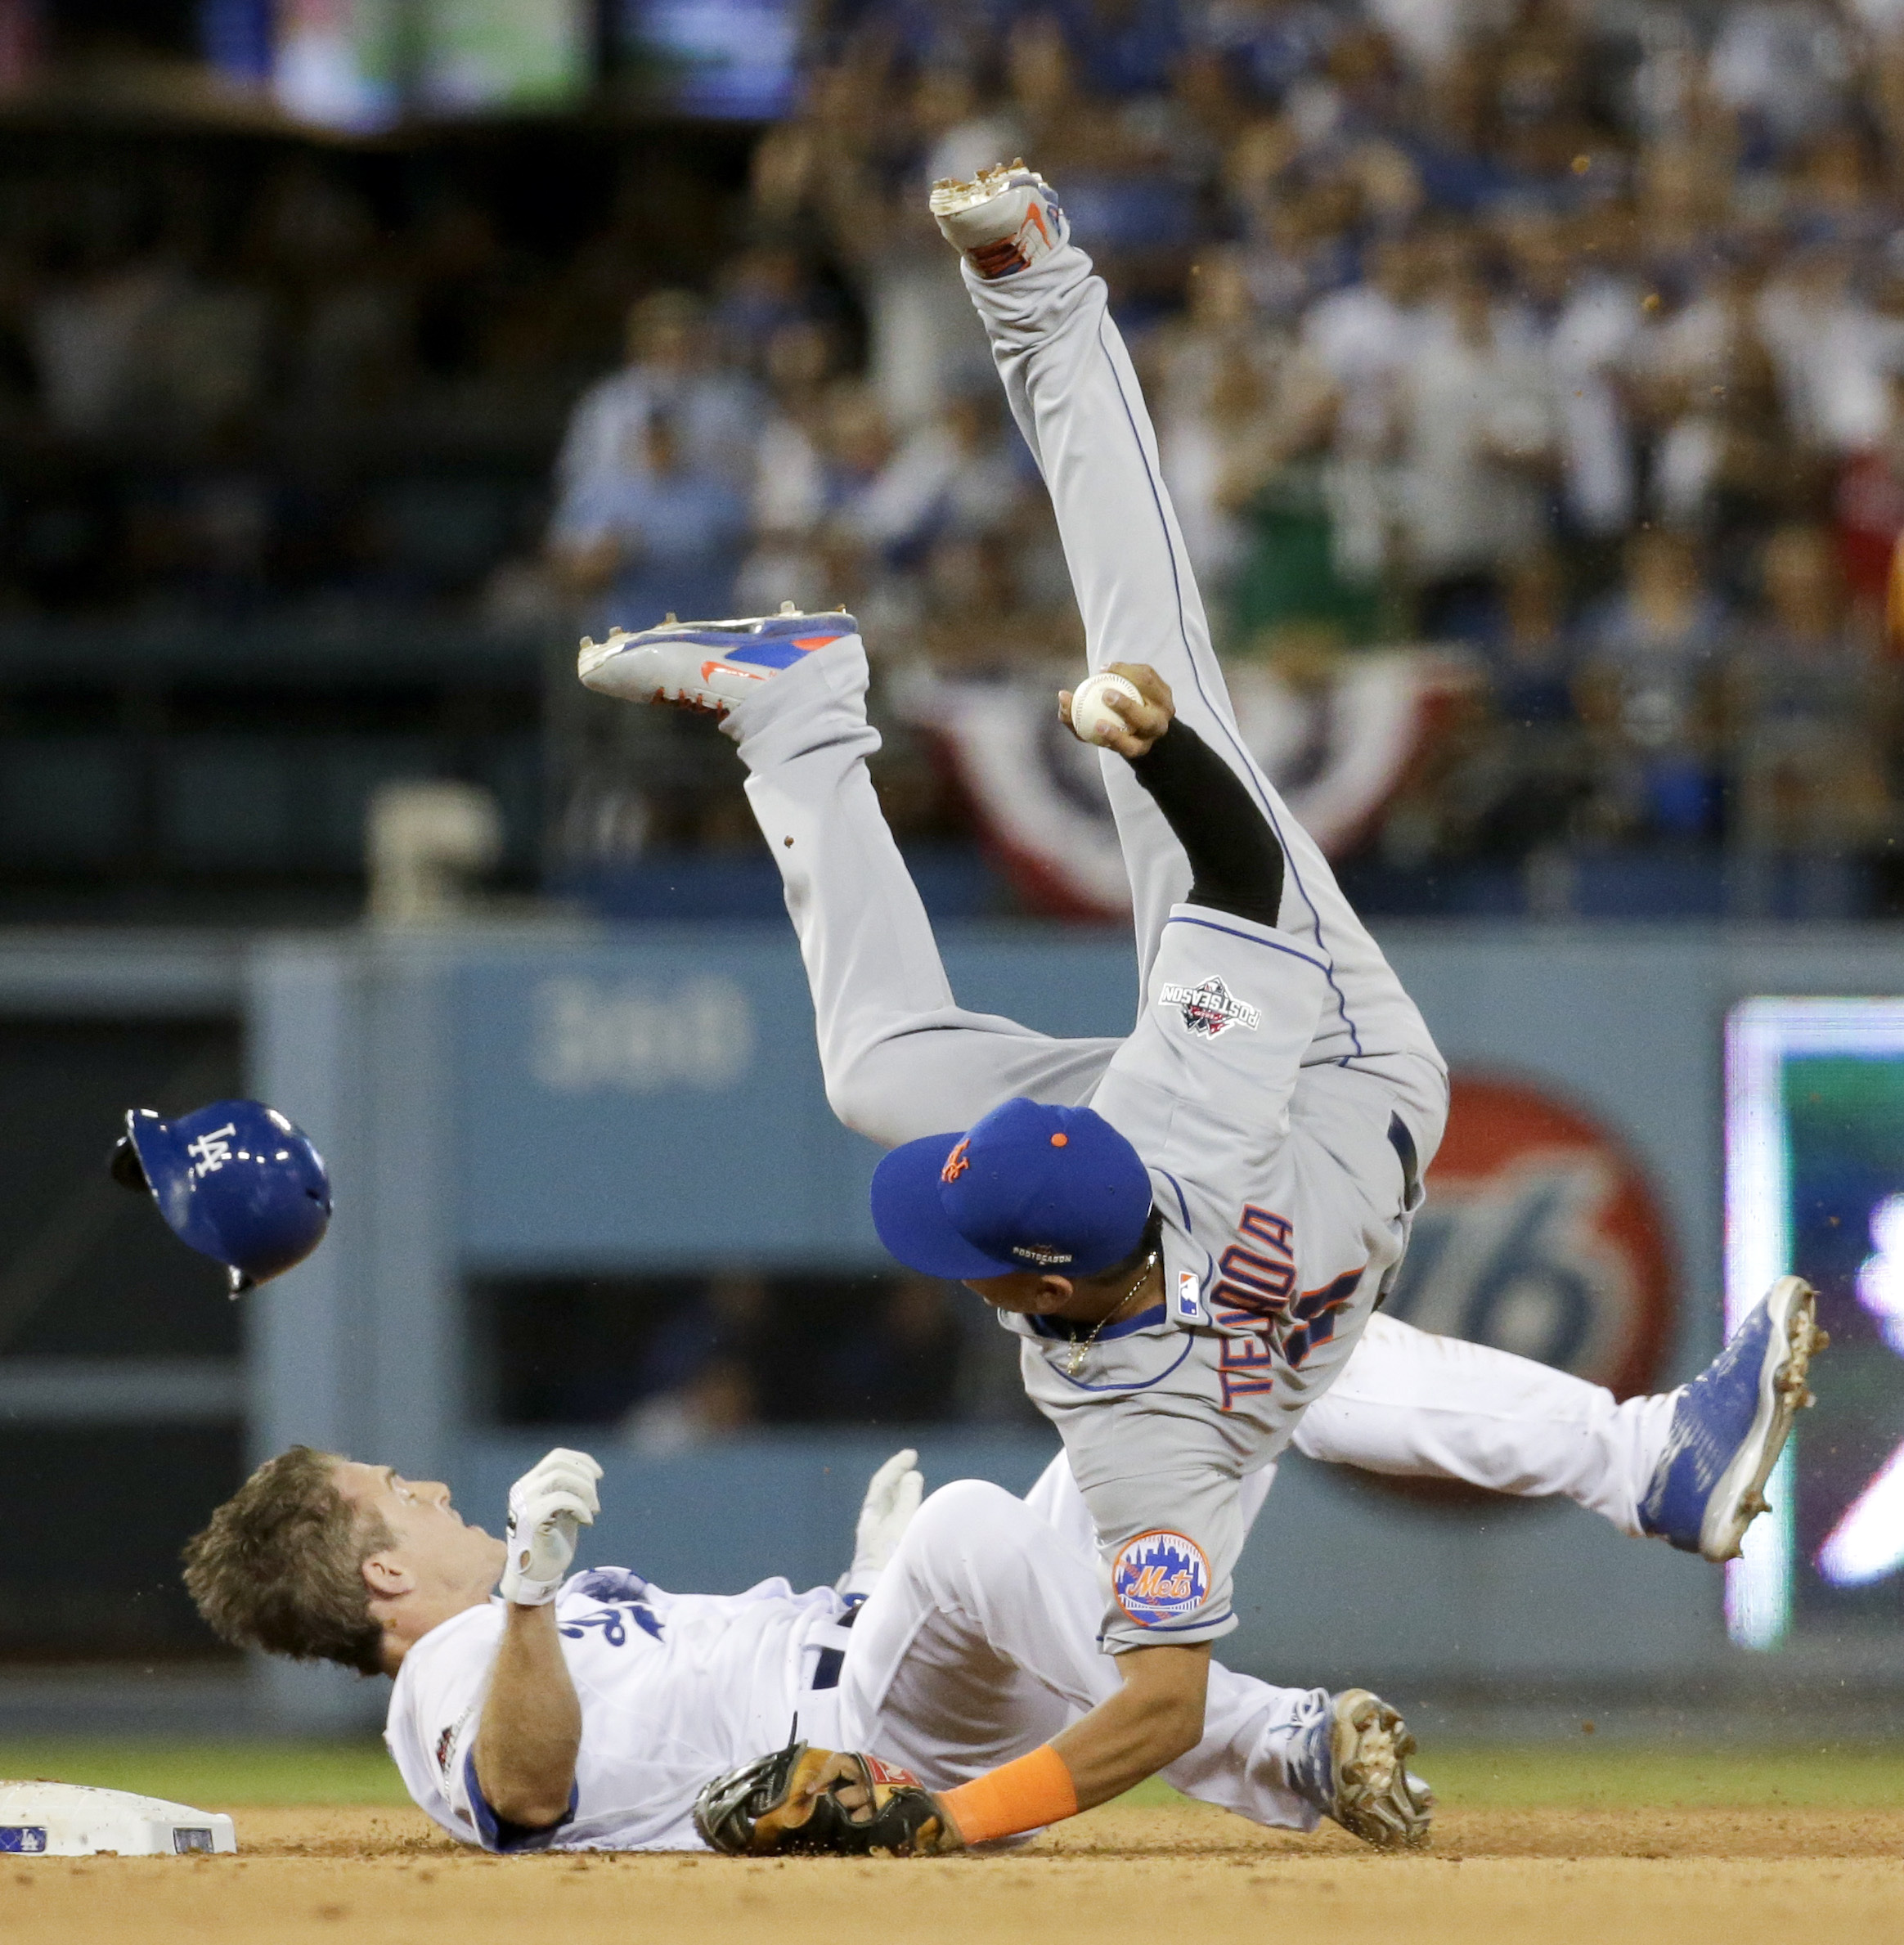 New York Mets shortstop Ruben Tejada, goes over the top of Los Angeles Dodgers' Chase Utley who broke up a double play during the seventh inning in Game 2 of baseball's National League Division Series, Saturday, Oct. 10, 2015 in Los Angeles. (AP Photo/Gre